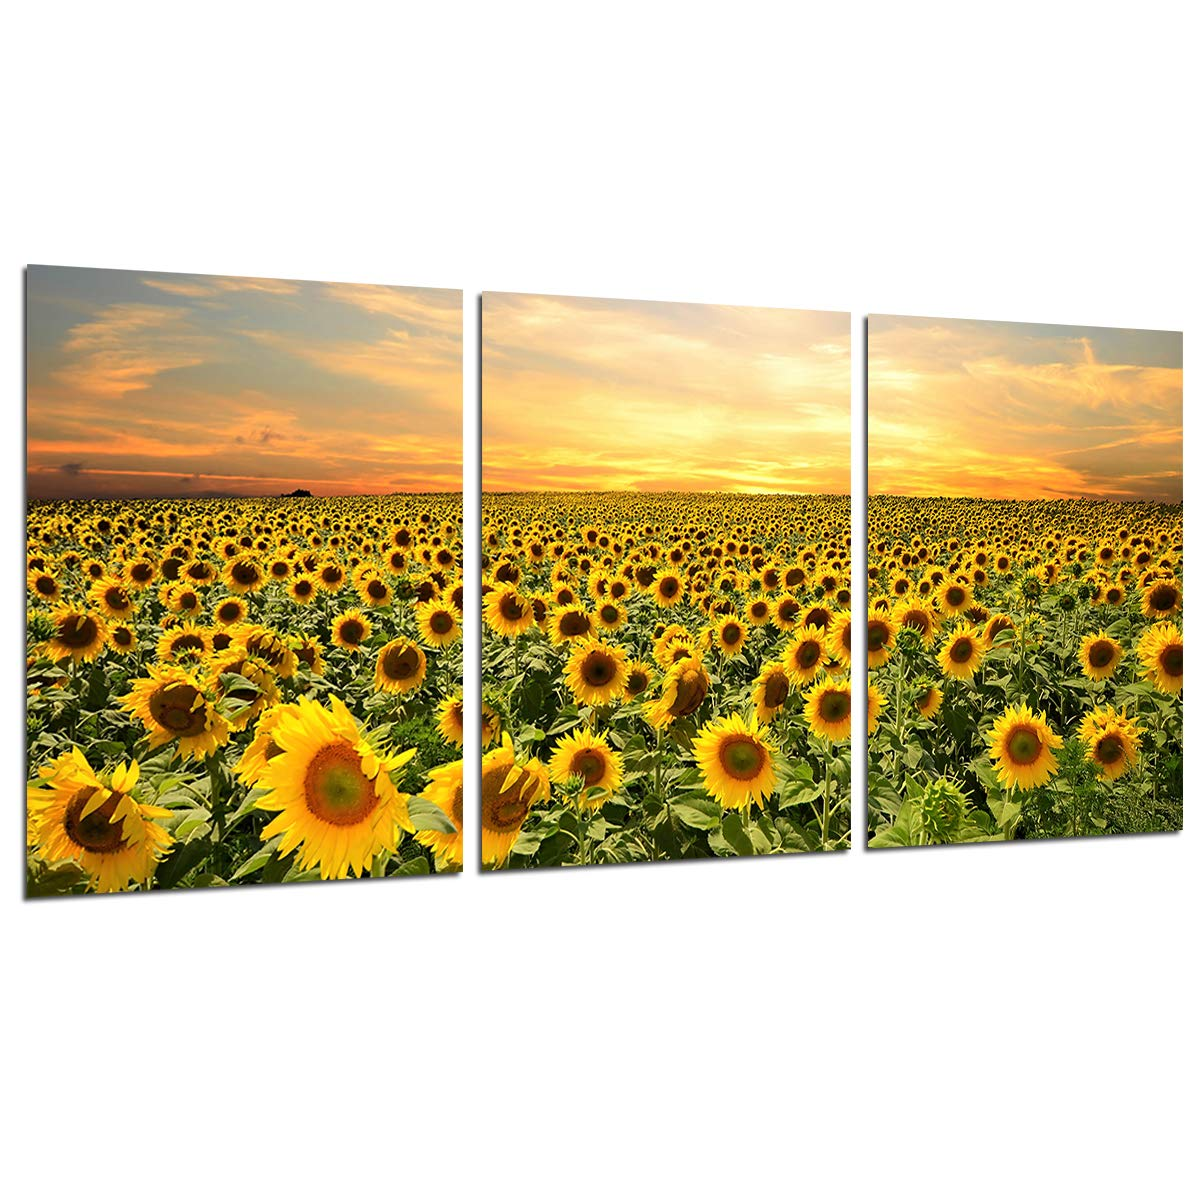 Sunflower Wall Art Canvas Painting -Unframed Flowers Home Decor Nature Pictures Sunset Posters and Prints Kitchen Decoration Wall Paintings for Living Room Modern Floral Artwork 3 Panels 12x16''